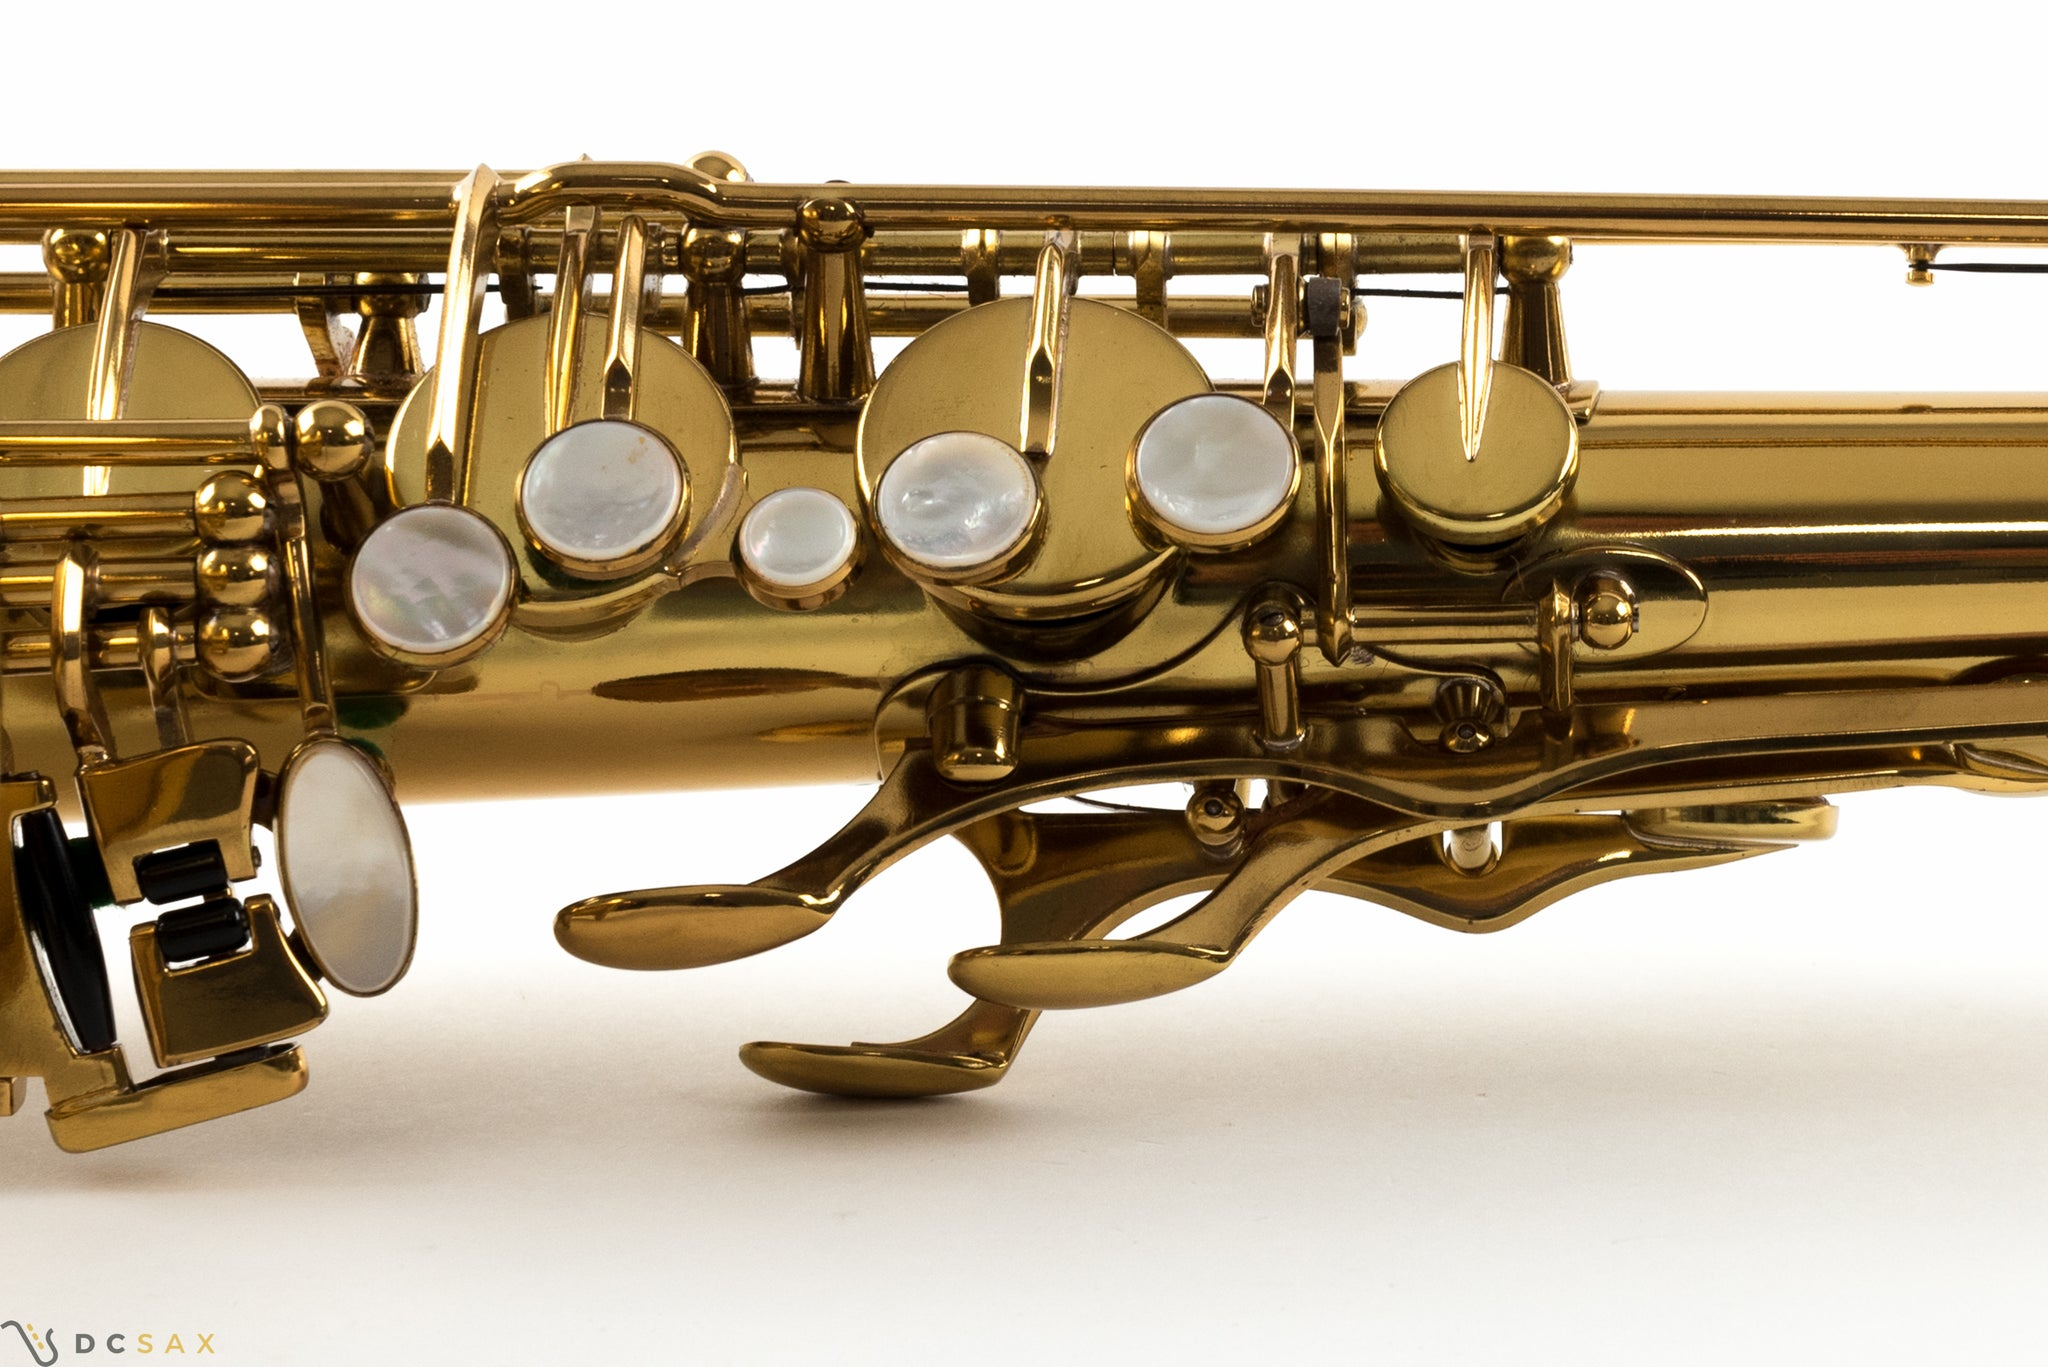 202,xxx Selmer Mark VI Tenor Saxophone, 99%+ Original Lacquer, Near Mint